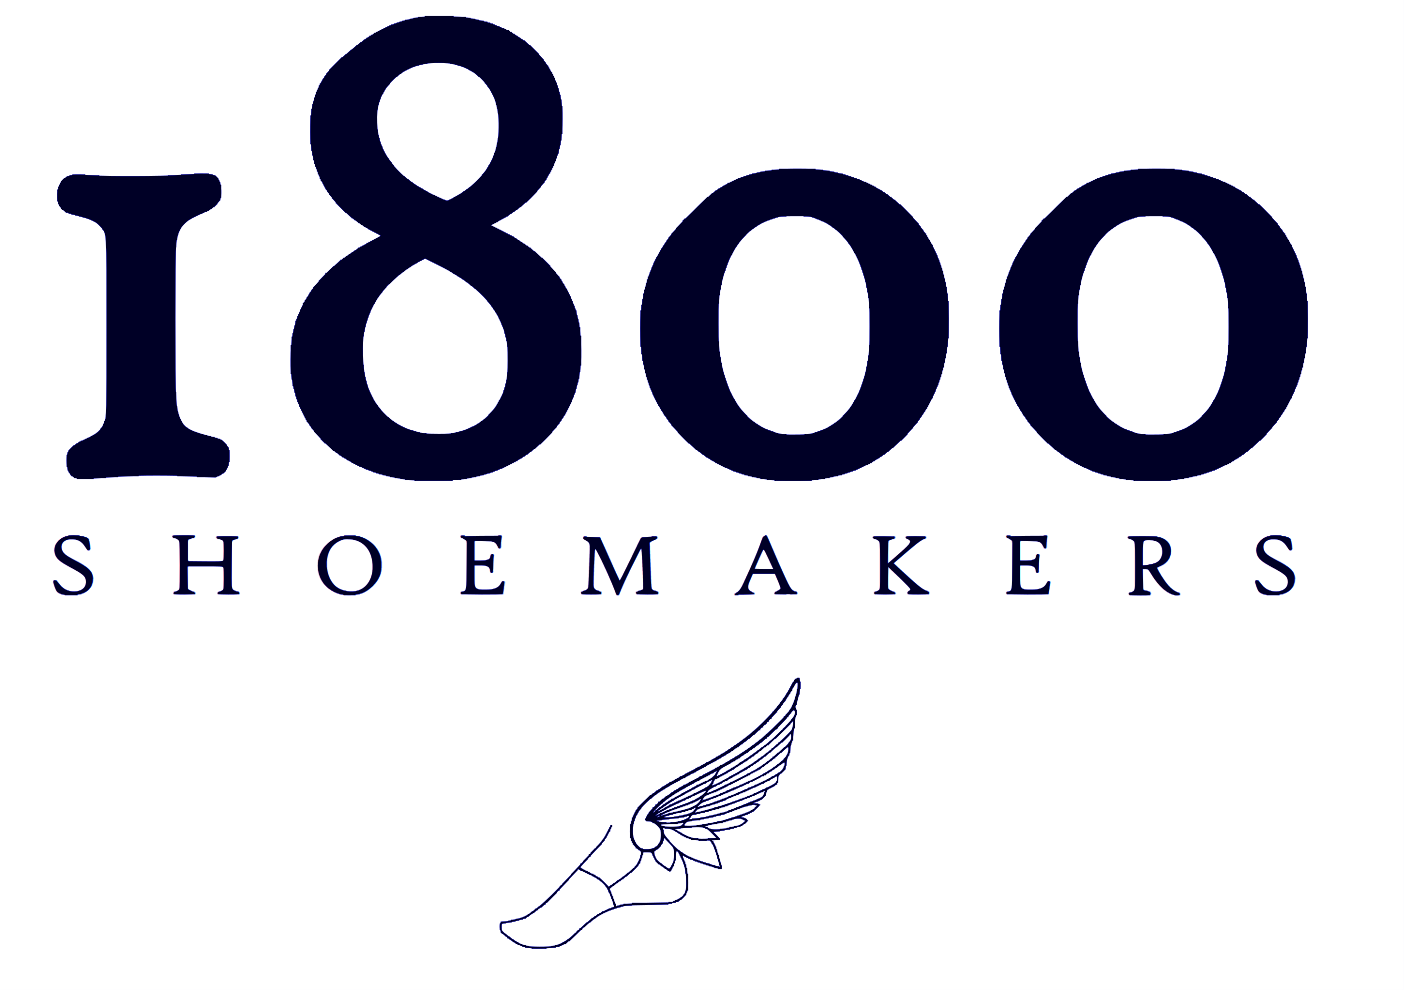 1800 Shoemakers